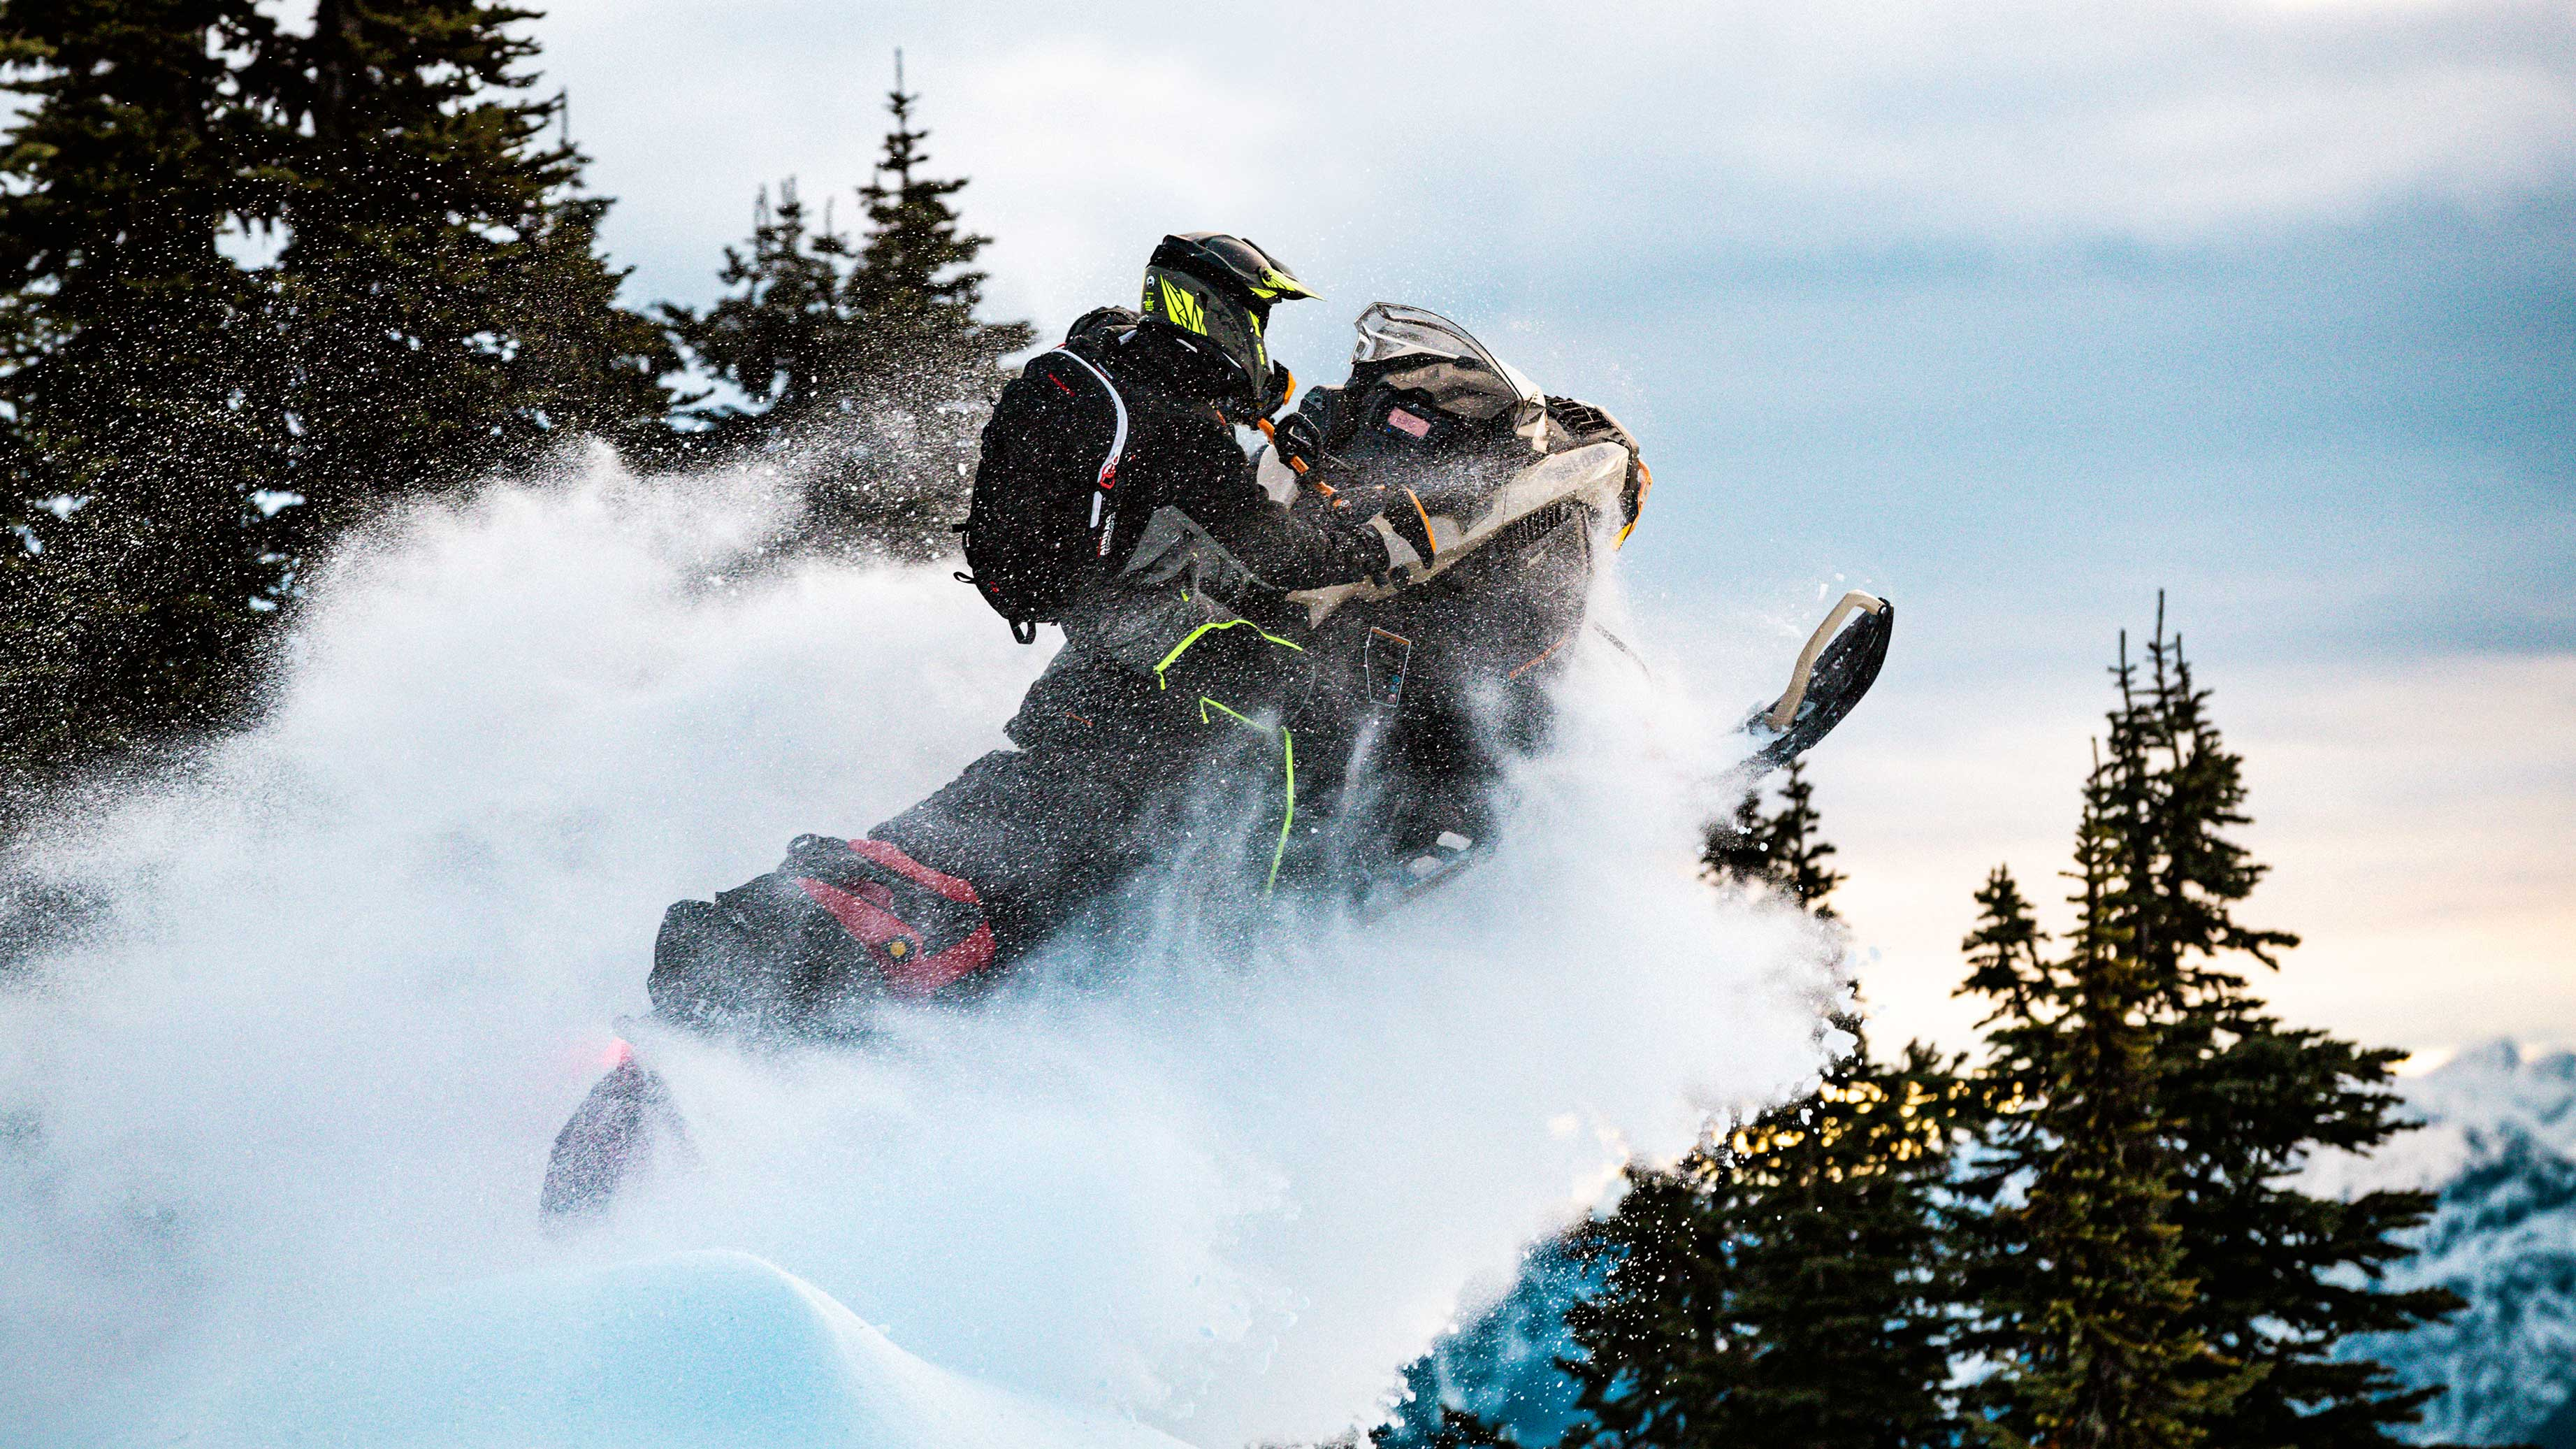 2022 Ski-Doo Expedition jumping in Deep-Snow